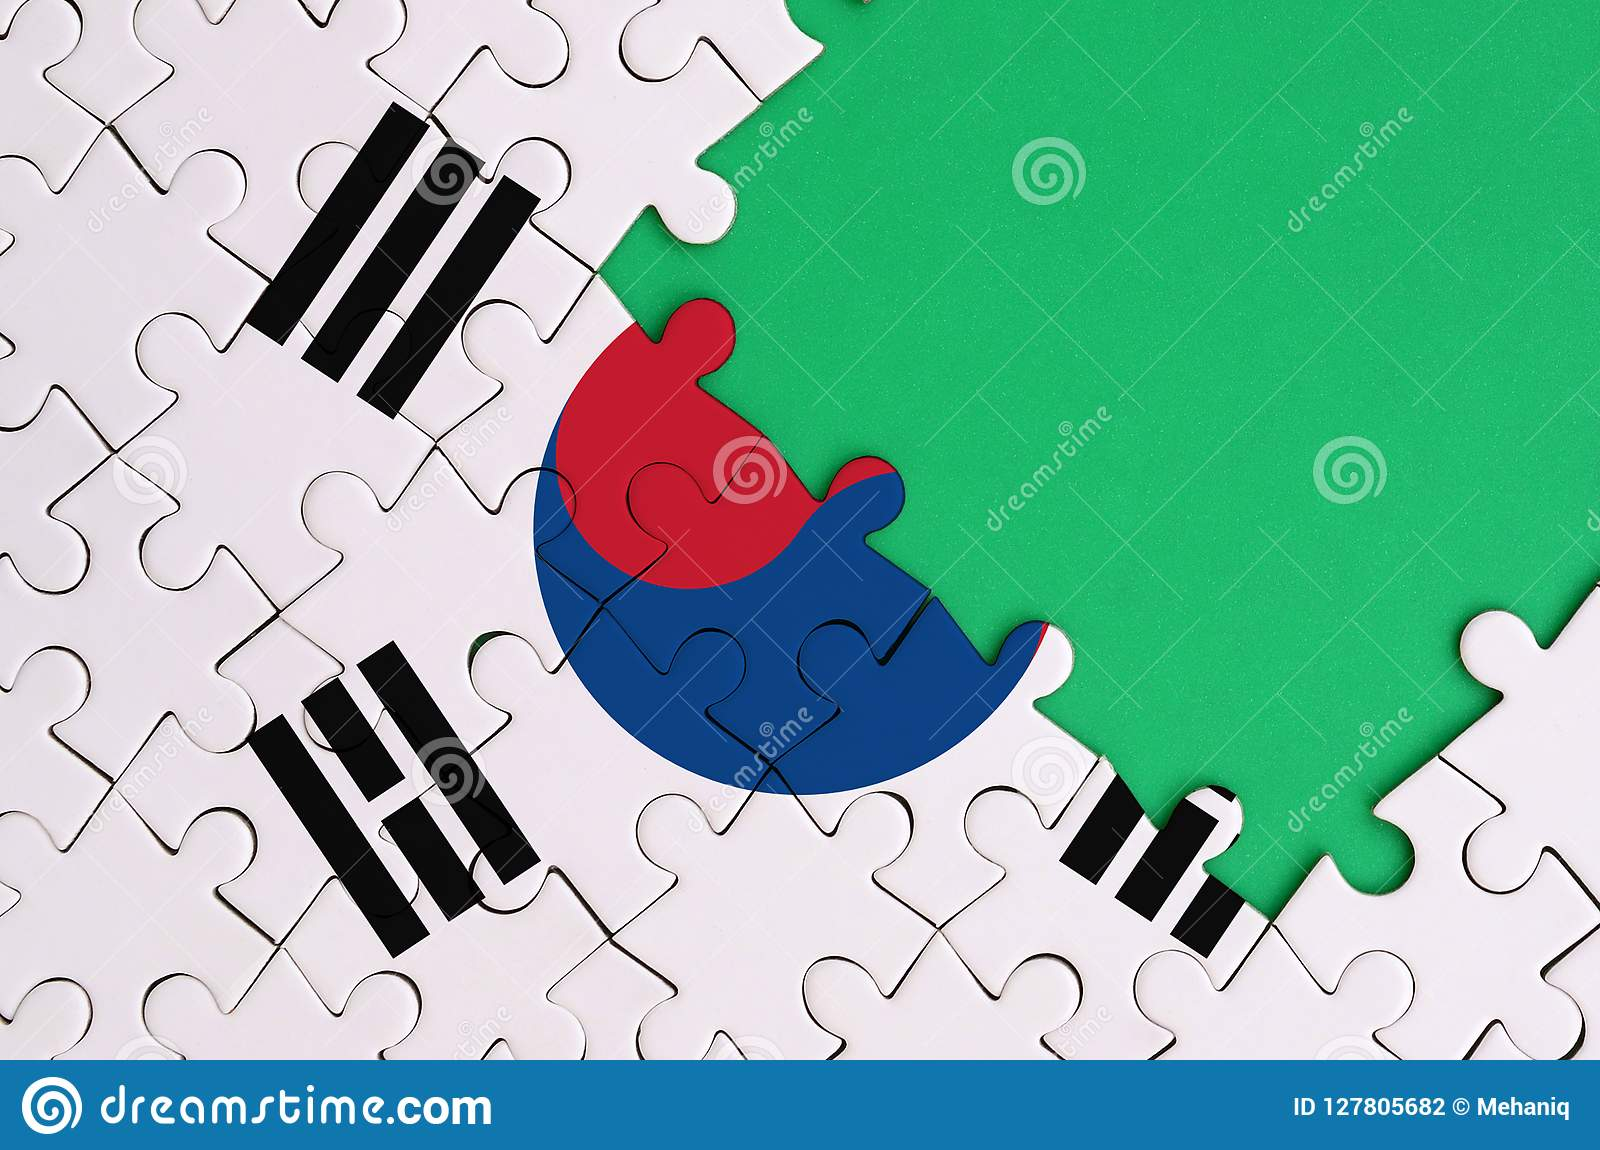 South Korea flag is depicted on a completed jigsaw puzzle with free green copy space on the right side